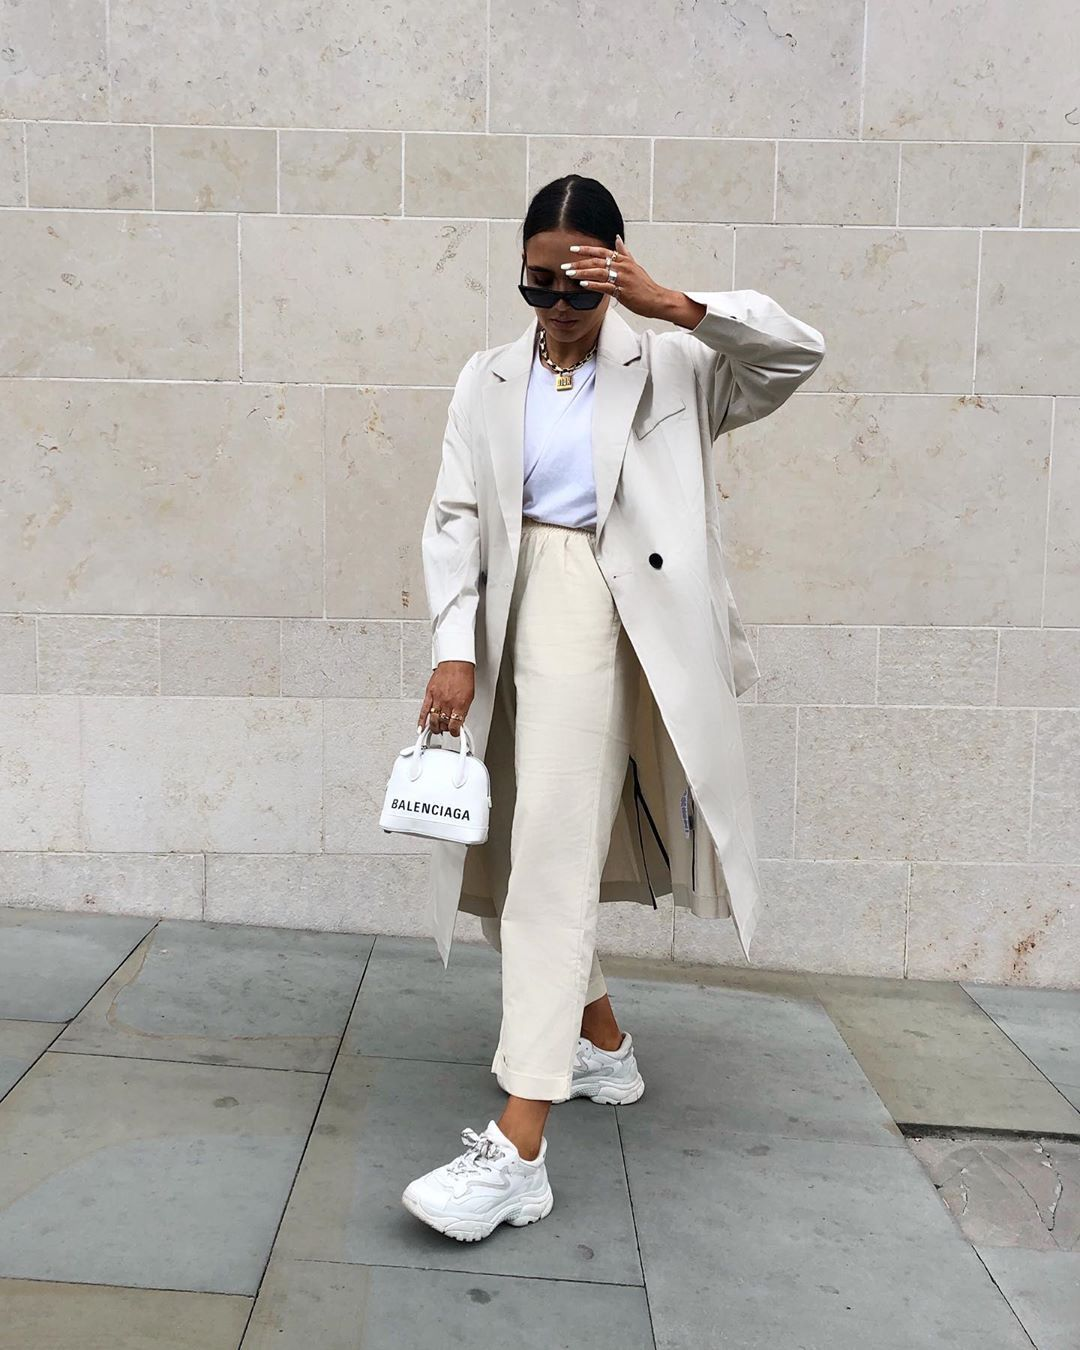 Follow me for more inspirations #fashion #style #outfitoftheday #outfitideas #fashion #style #lookbook #fashiontrends #fashionoutfits #outfits #outfitoftheday #outfitideas #outfitinspiration #styleinspiration #styleblogger #dresses